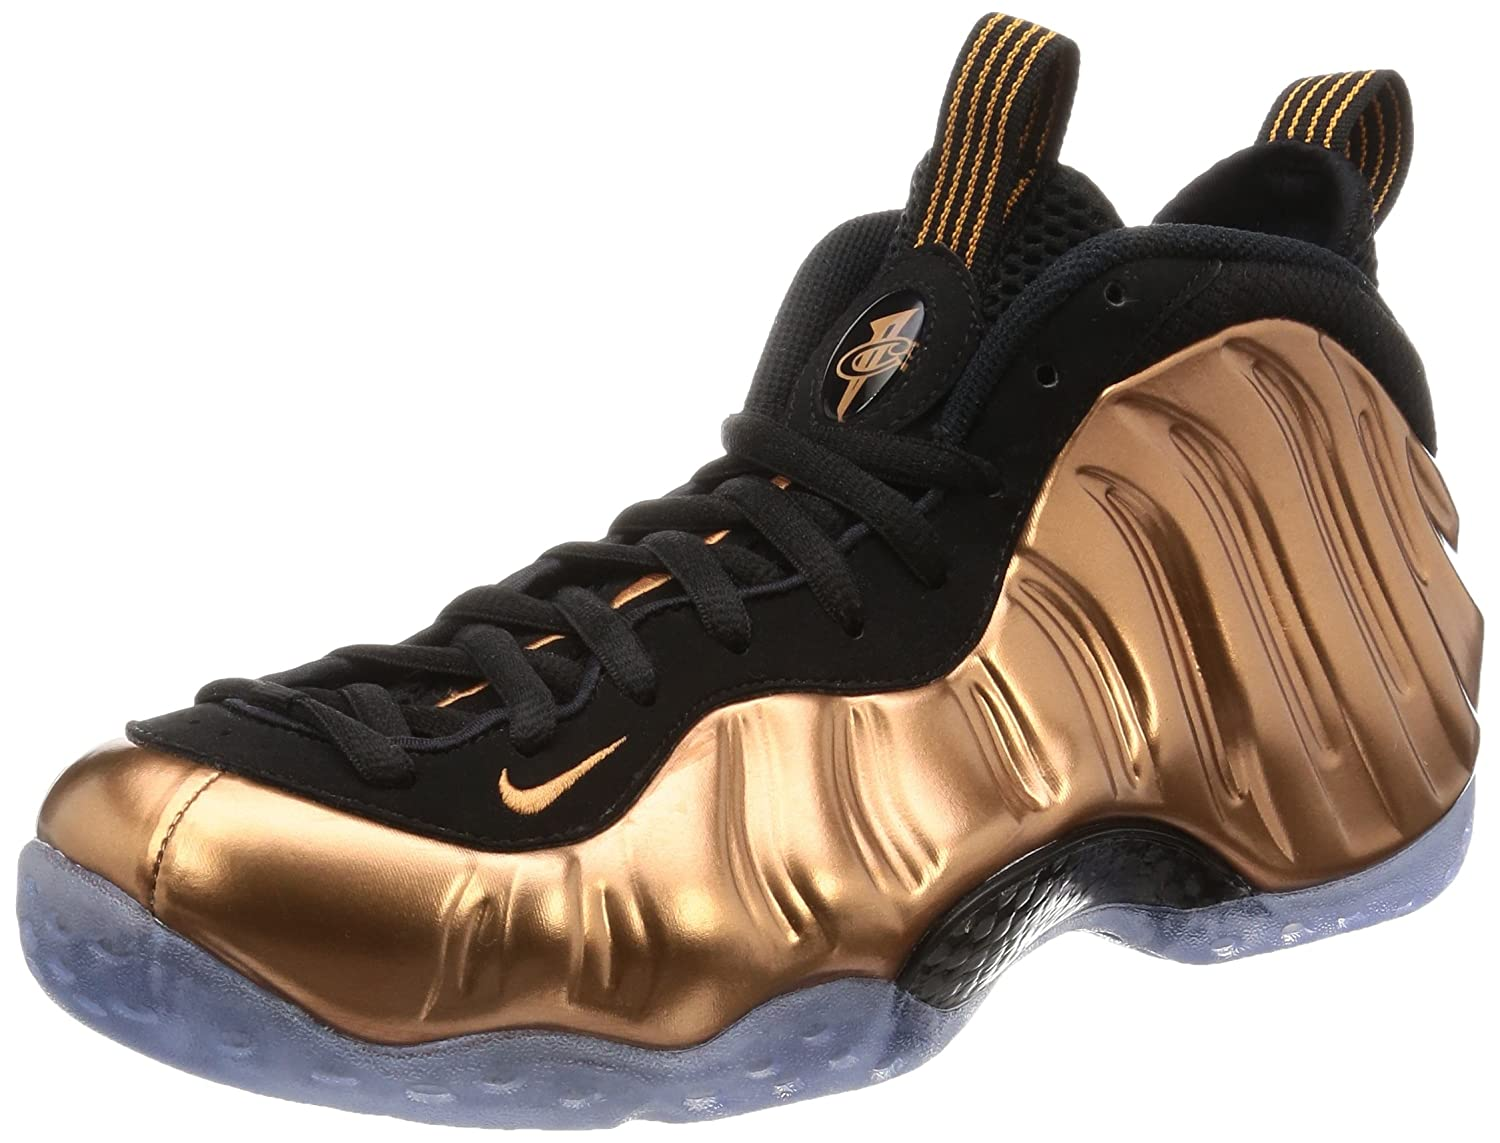 Nike Herren Air Foamposite One Basketballschuhe  75|Black, Metallic Copper-black